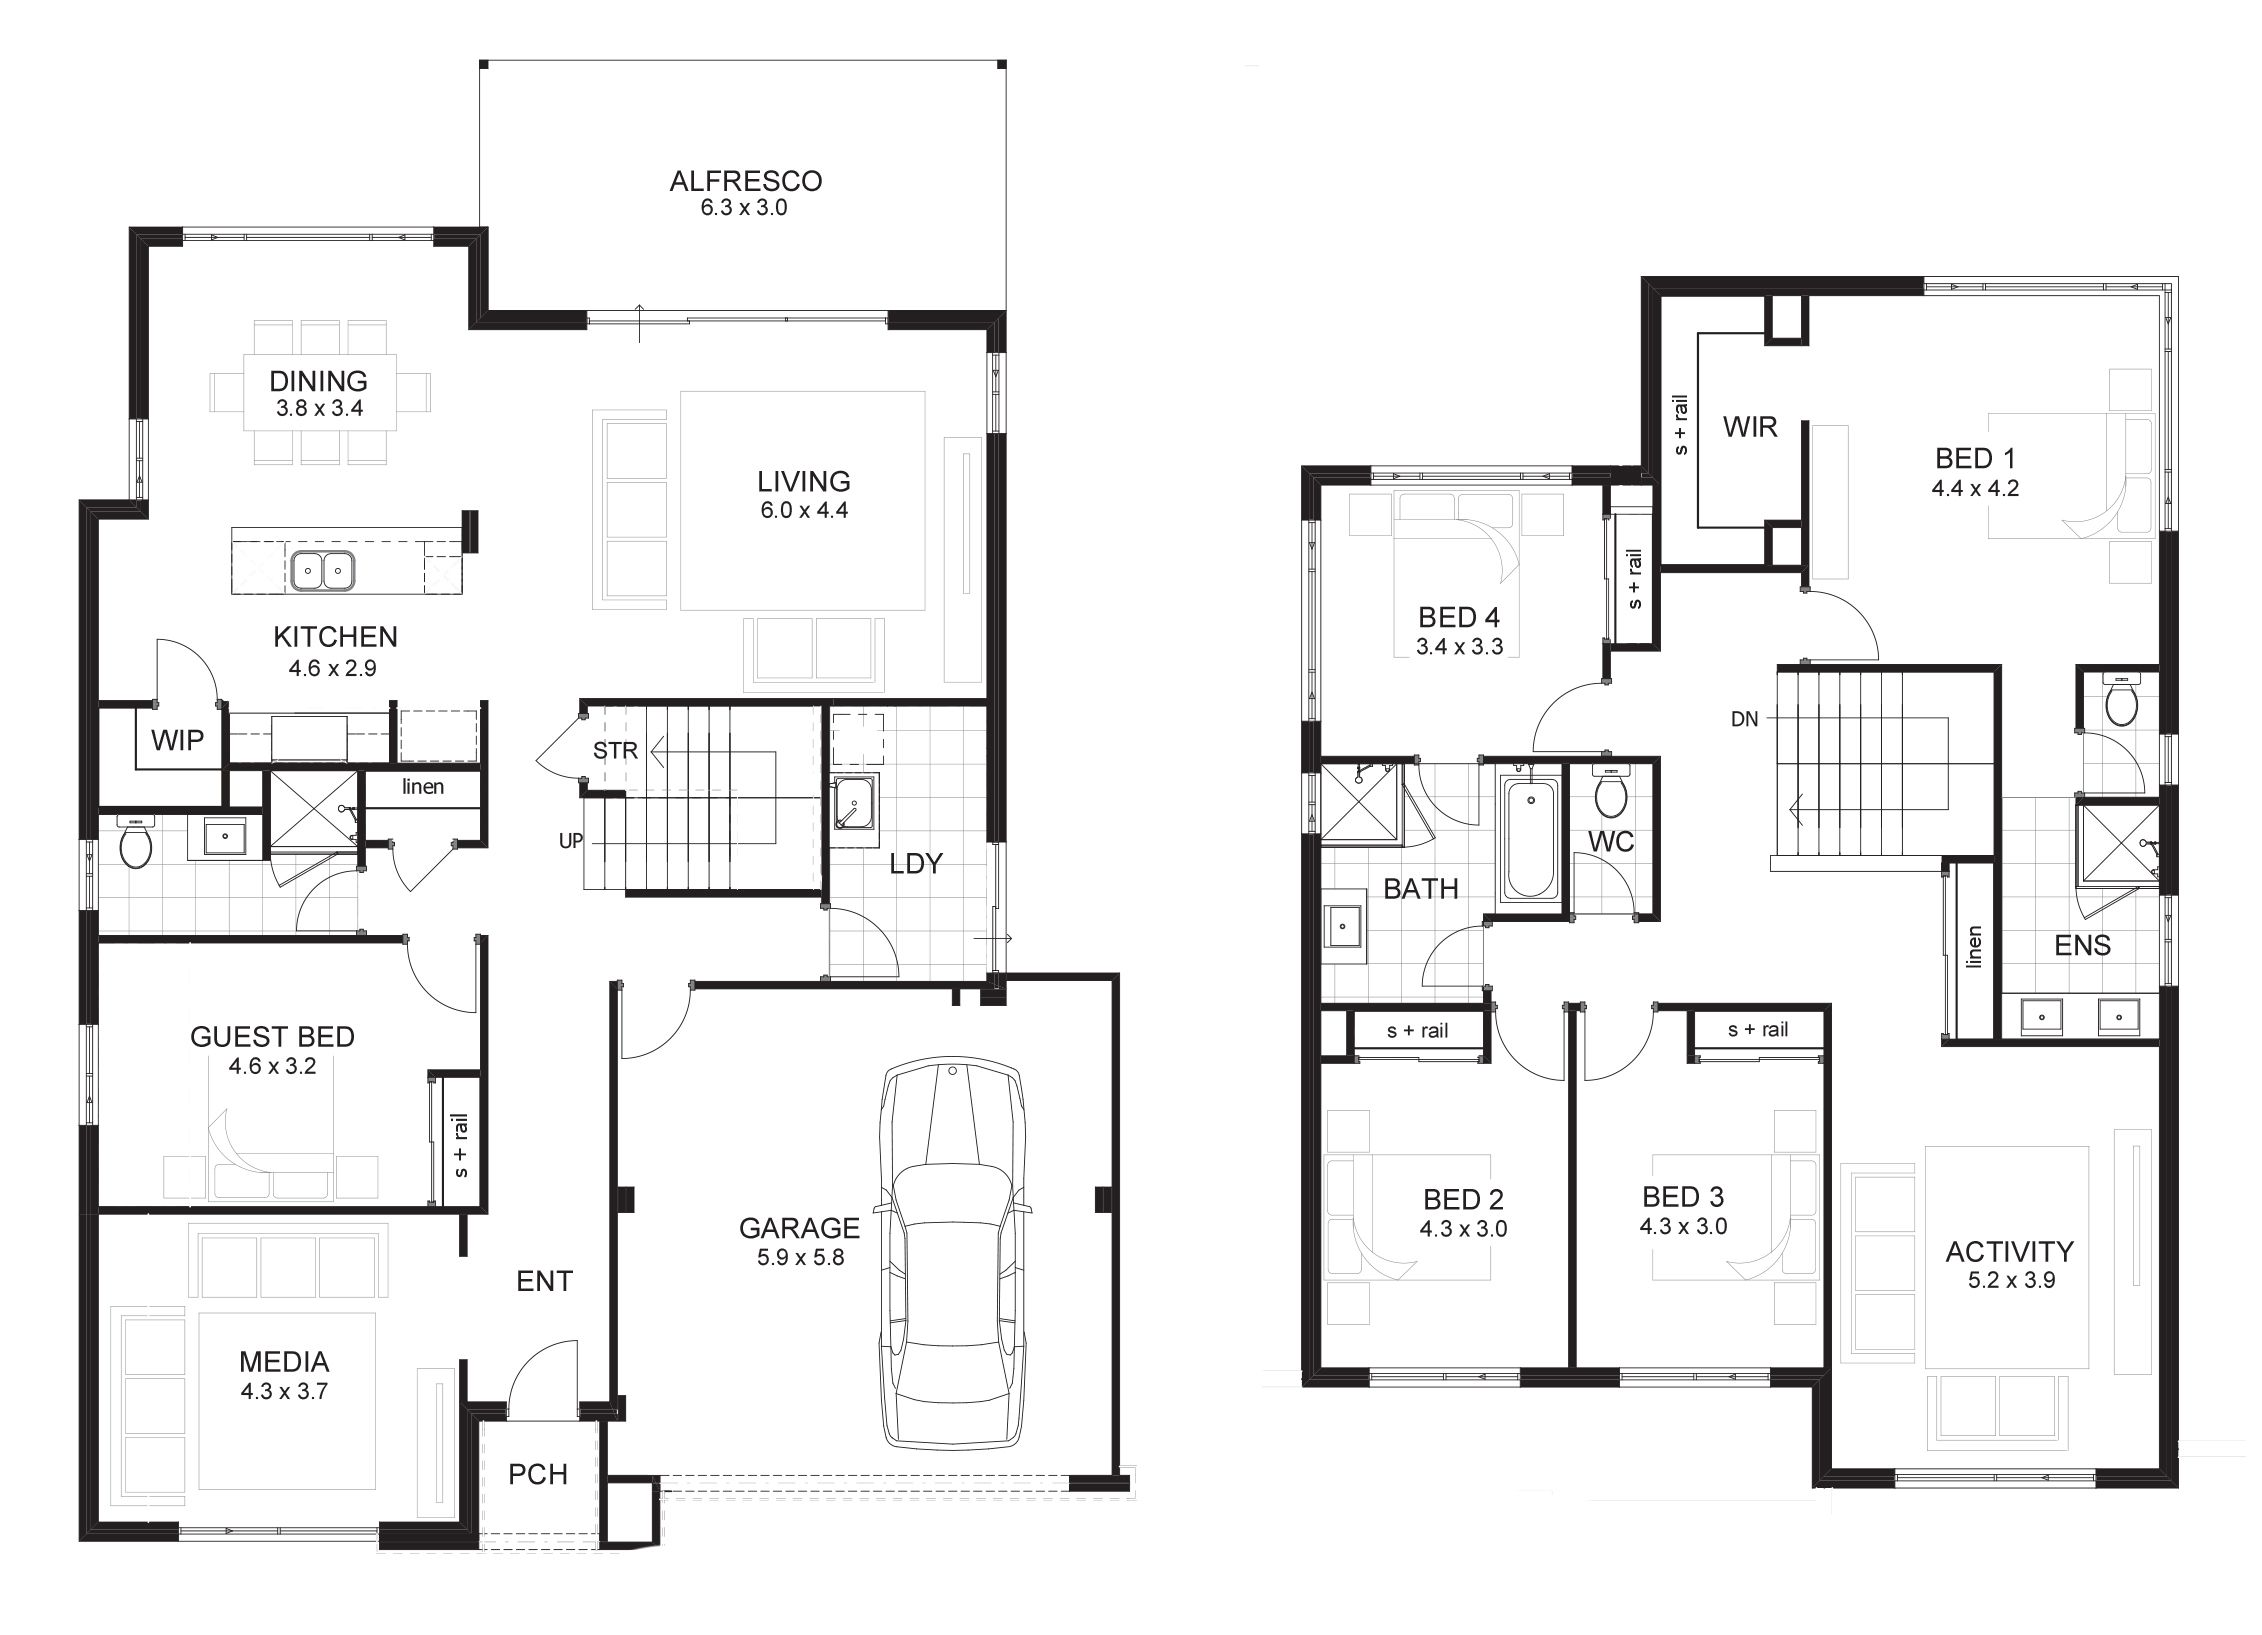 6 bedroom house plans perth pinterest Free home floor plan design